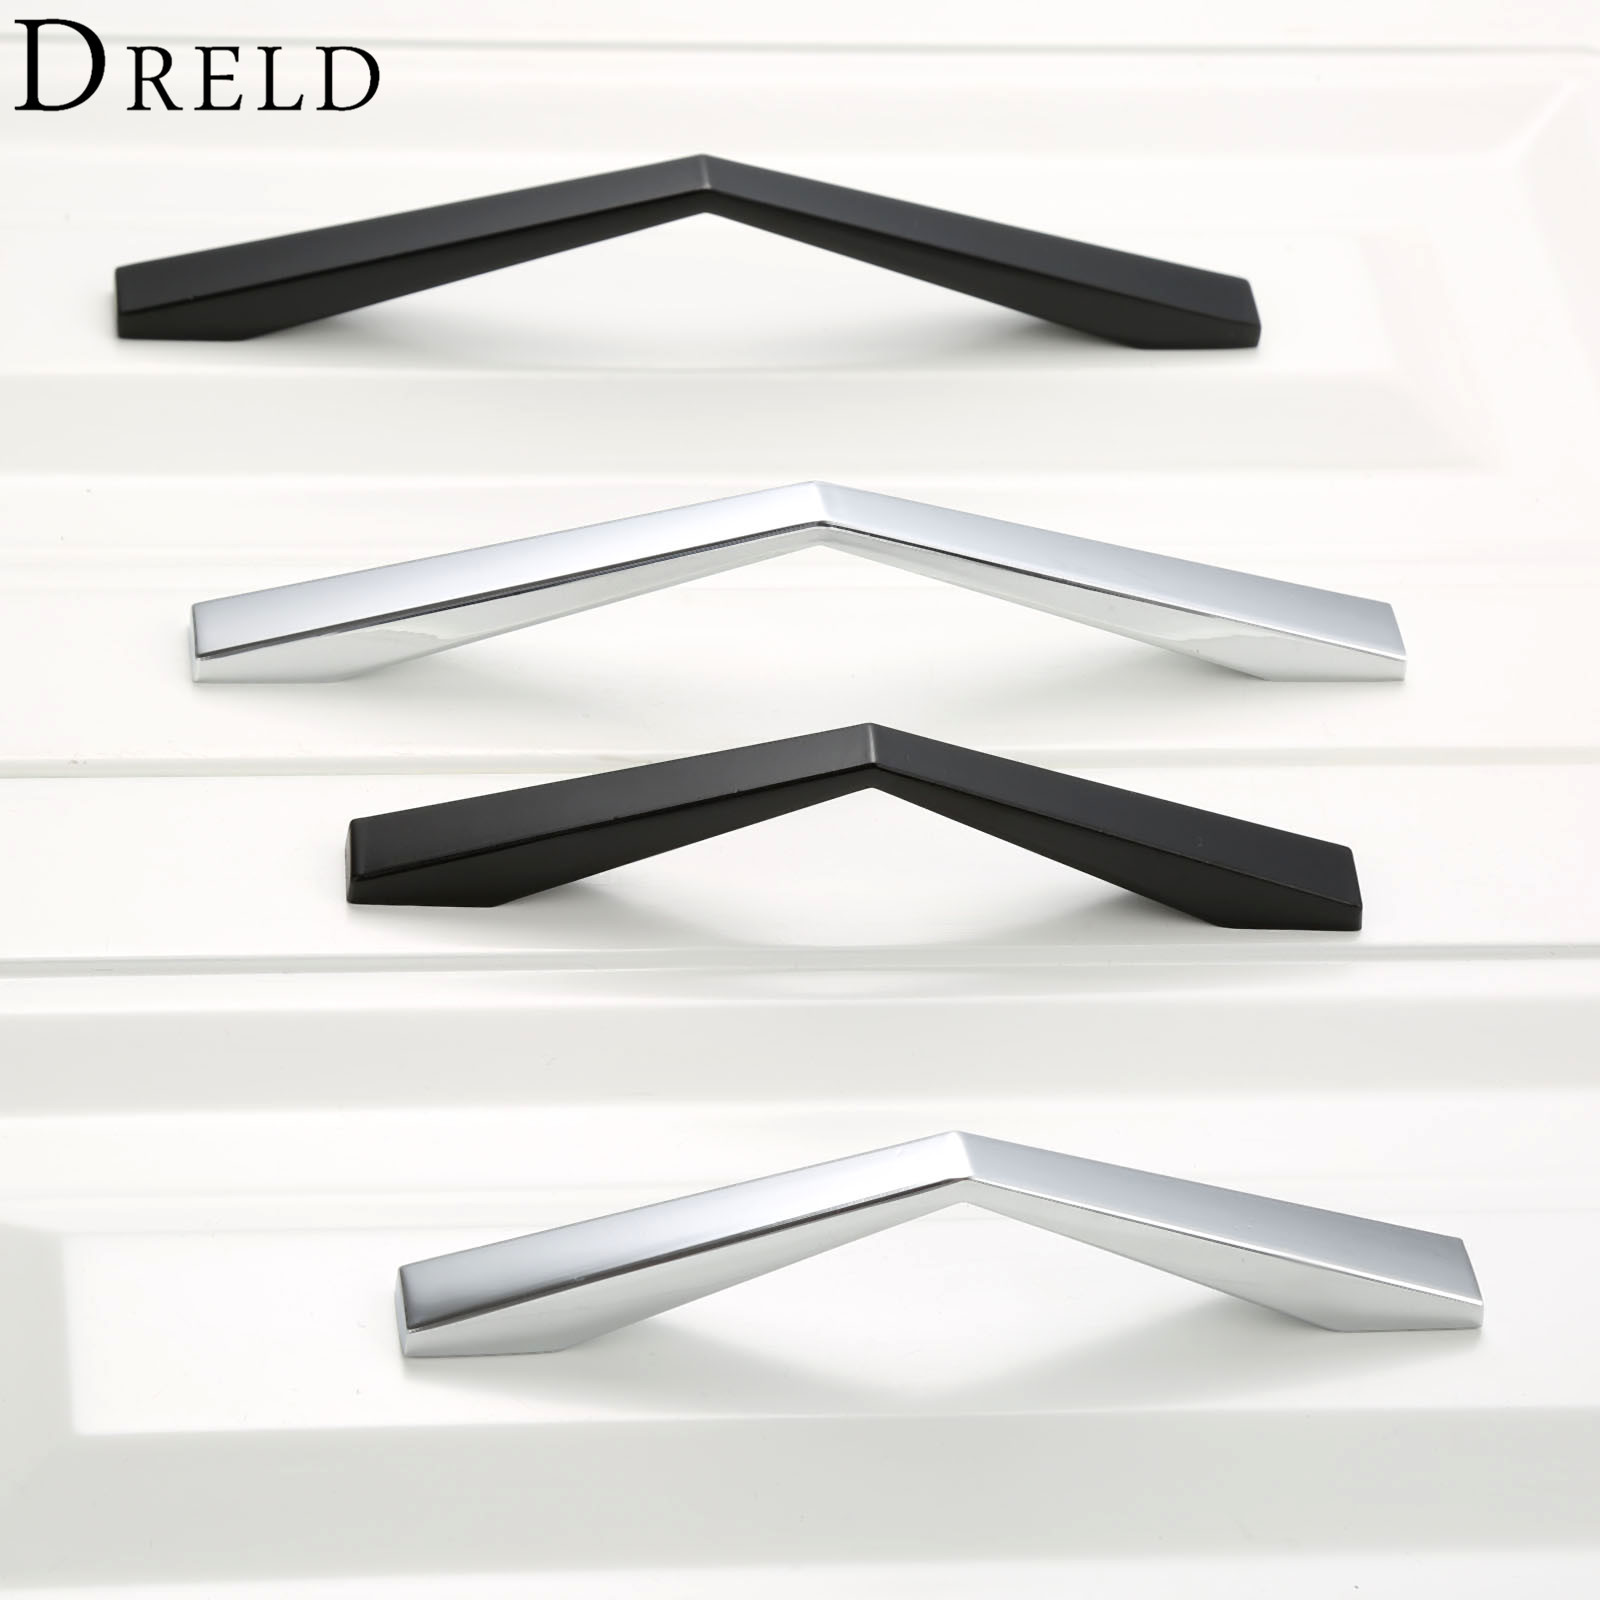 DRELD Furniture Handle Cabinet Knobs and Handles Closet Drawer Door Kitchen Pull Handle Hole Spacing 96/128mm Furniture Hardware dreld 96 128 160mm furniture handle modern cabinet knobs and handles door cupboard drawer kitchen pull handle furniture hardware